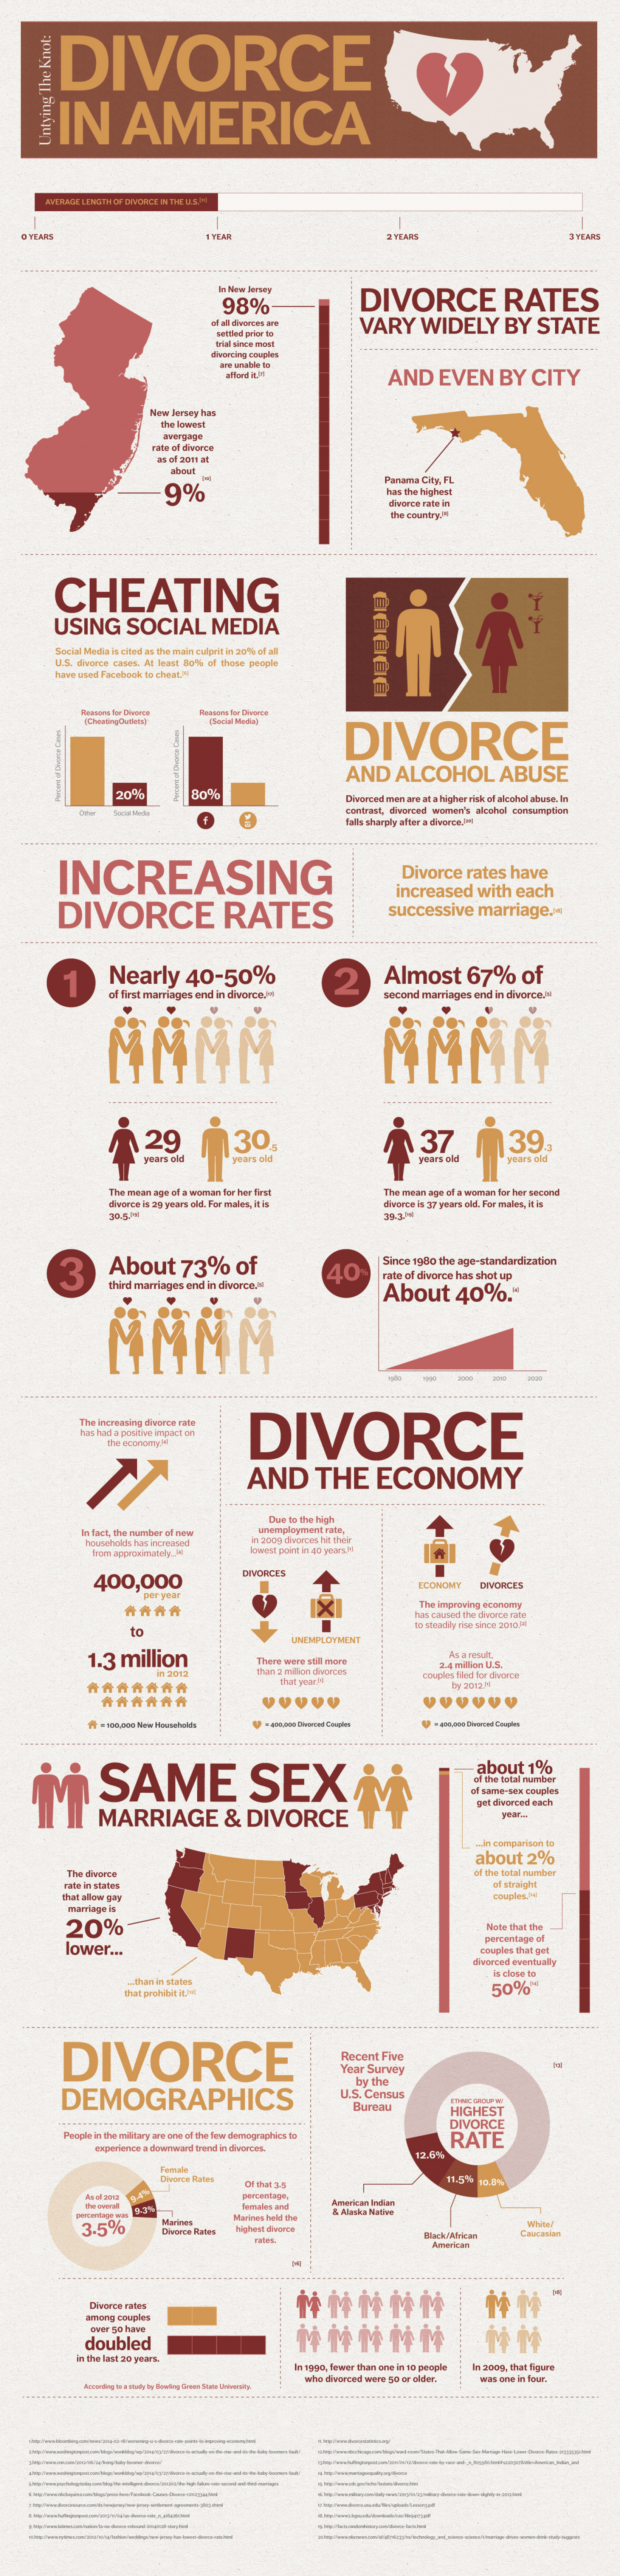 Untying the Knot: Divorce in America  Infographic